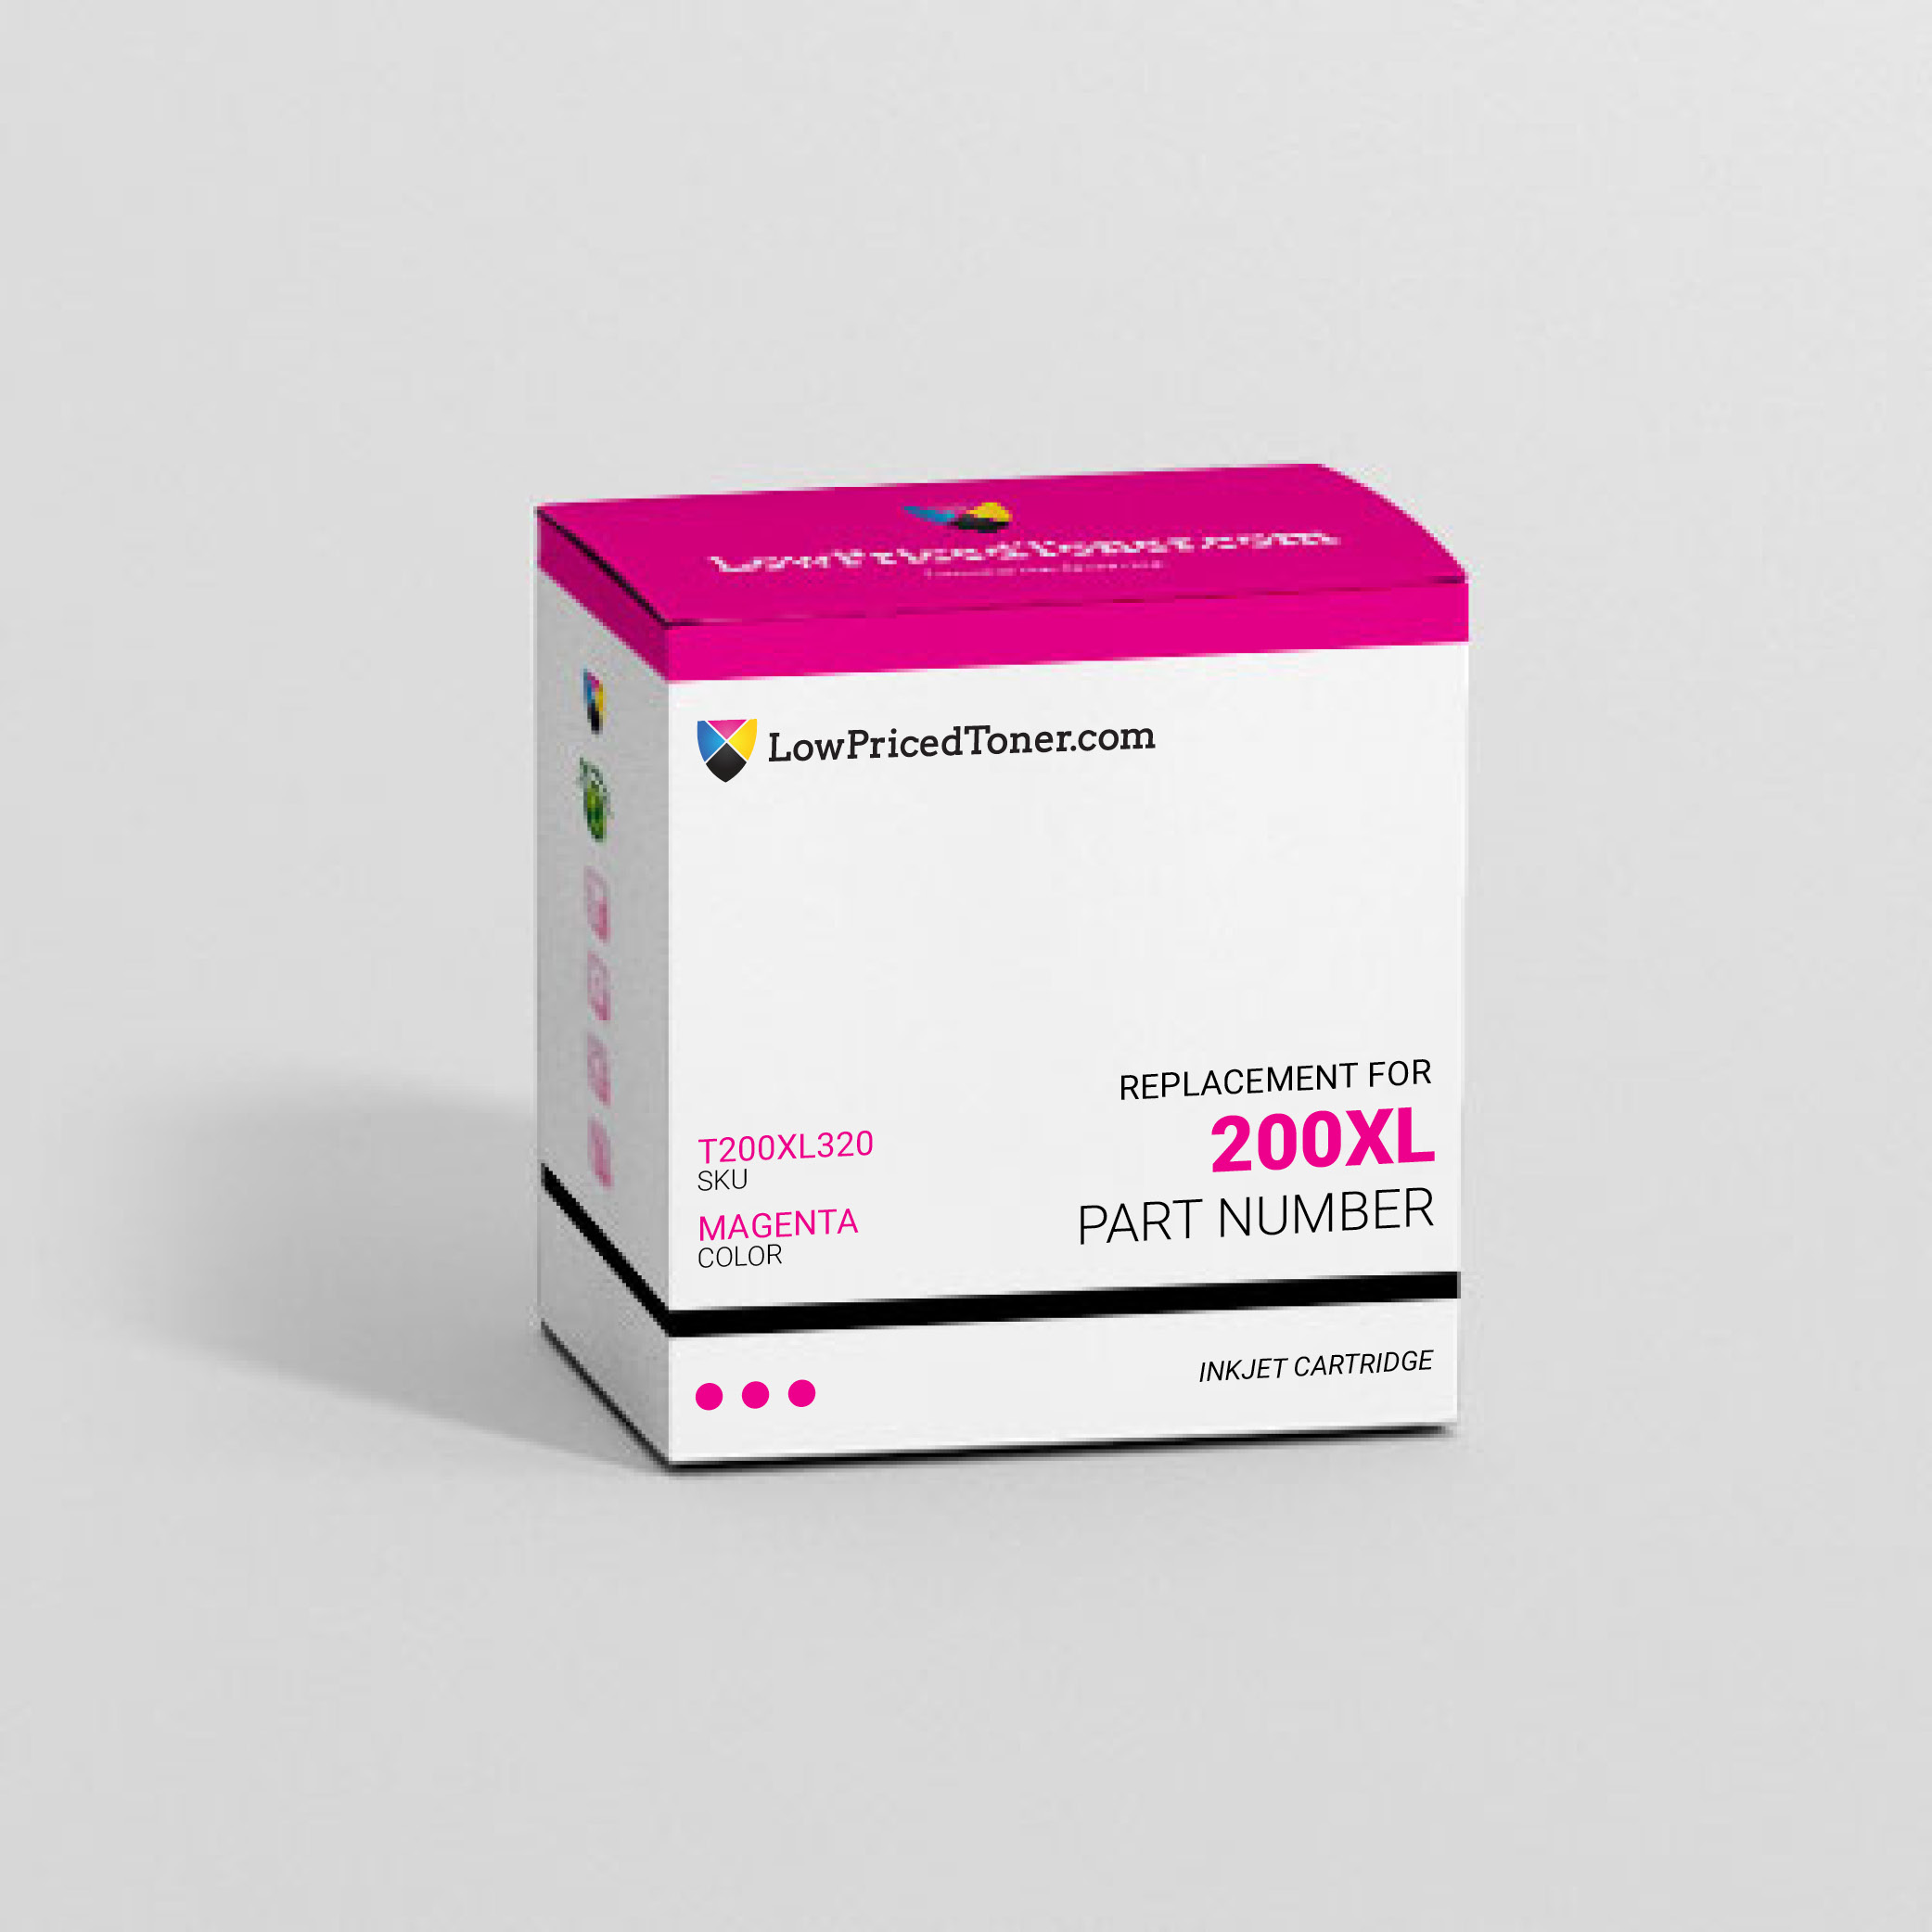 Epson T200XL320 200XL Remanufactured Magenta Ink Cartridge High Yield